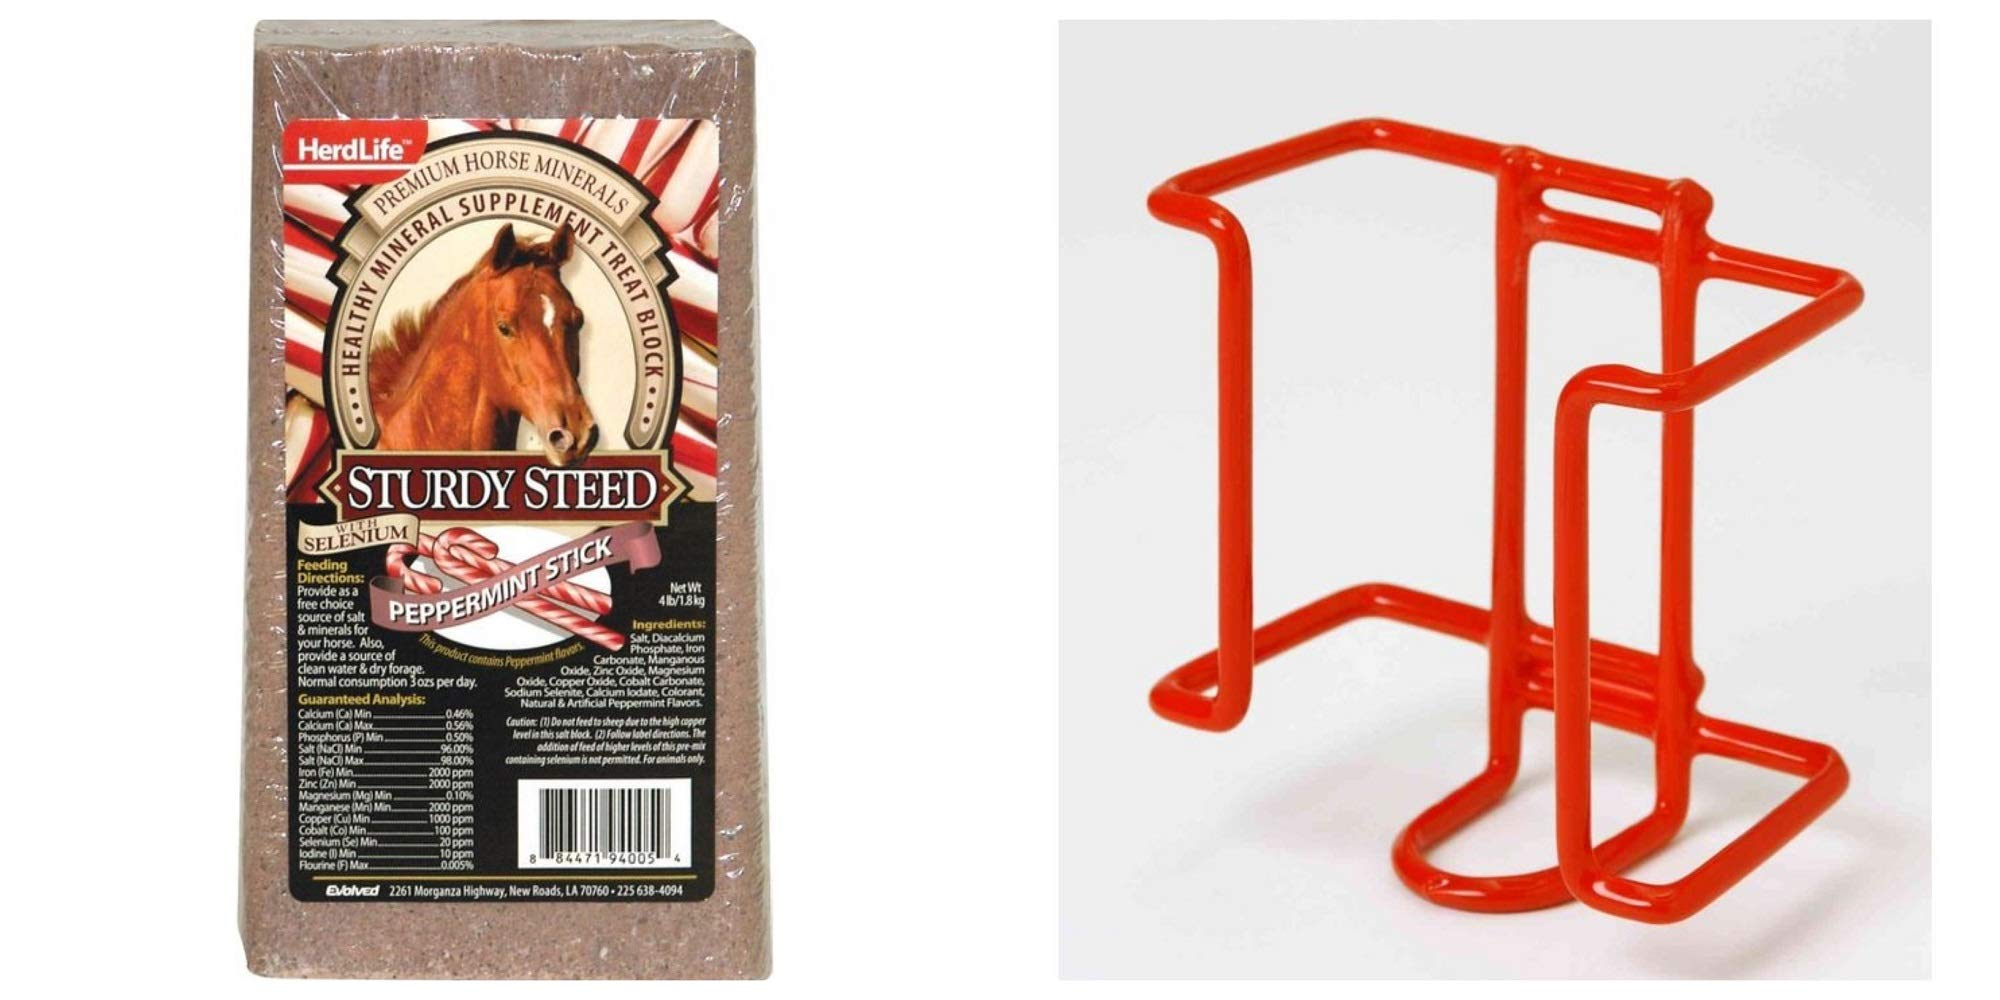 Herdlife Sturdy Steed Horse Mineral Salt Block with Selenium, Peppermint Flavor, 4 Lbs. + Little Giant 4-Pound Wire Salt Block Holder